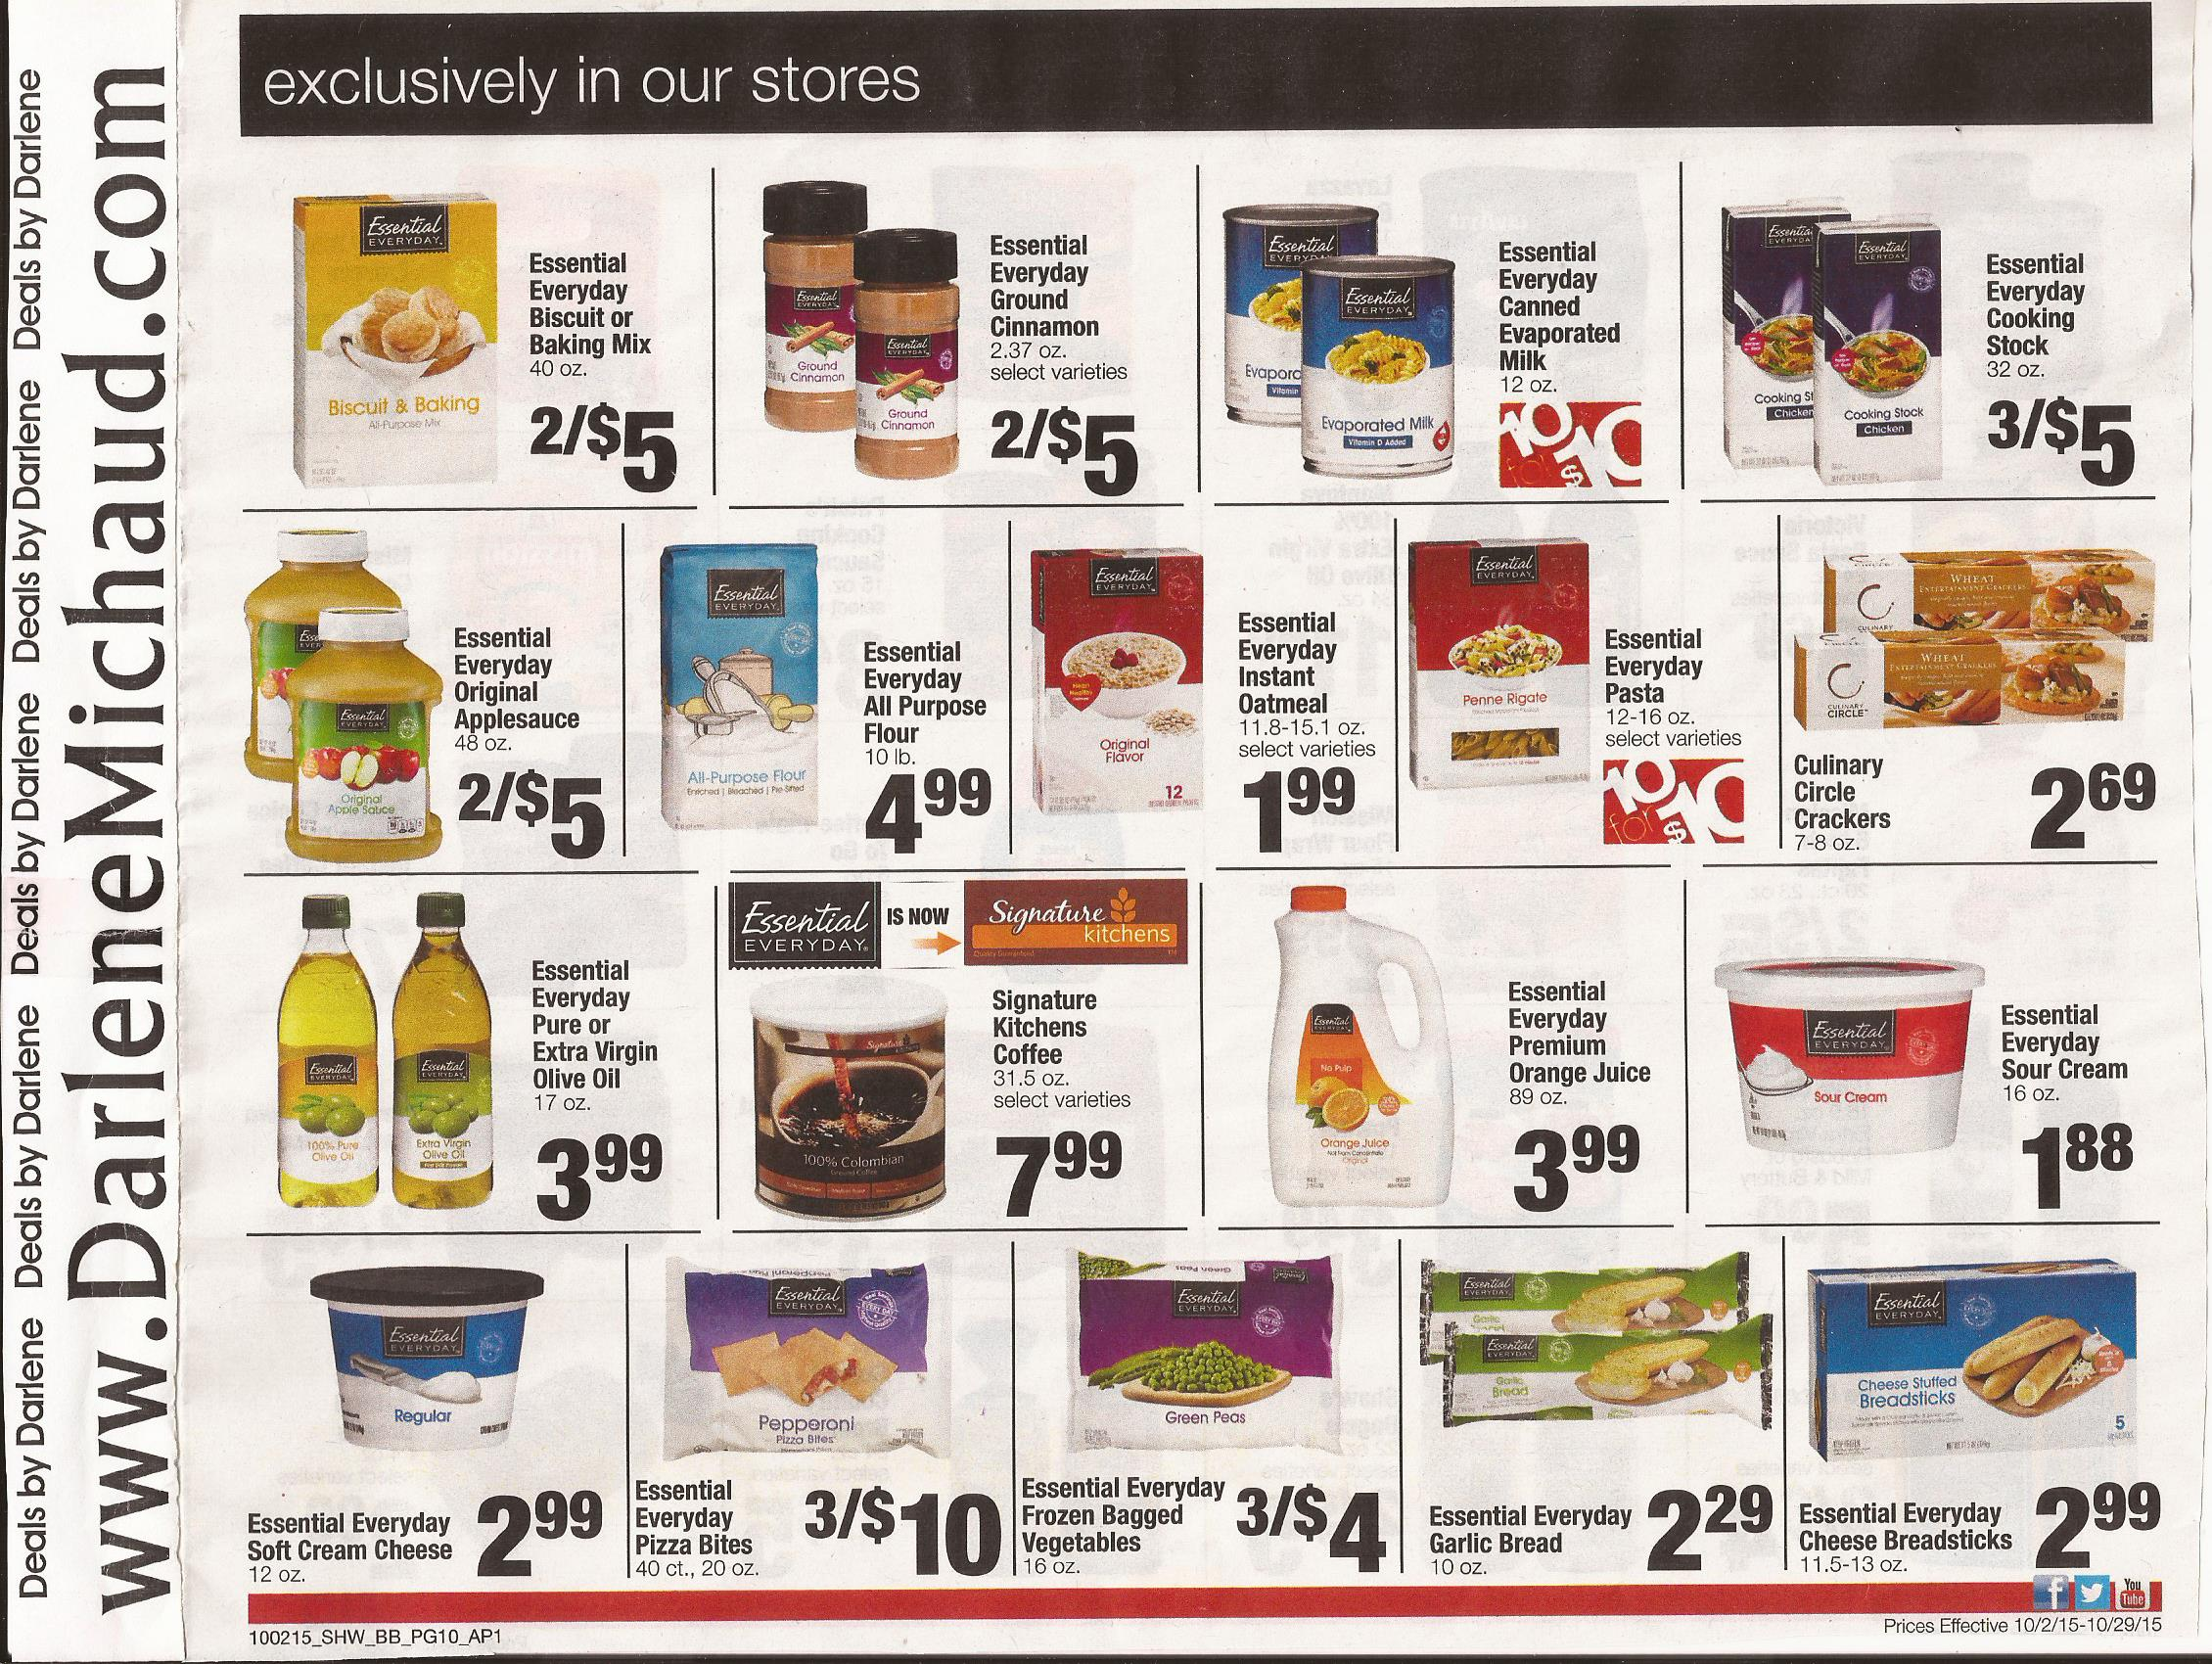 shaws-big-book-savings-10-2-10-29-page-10